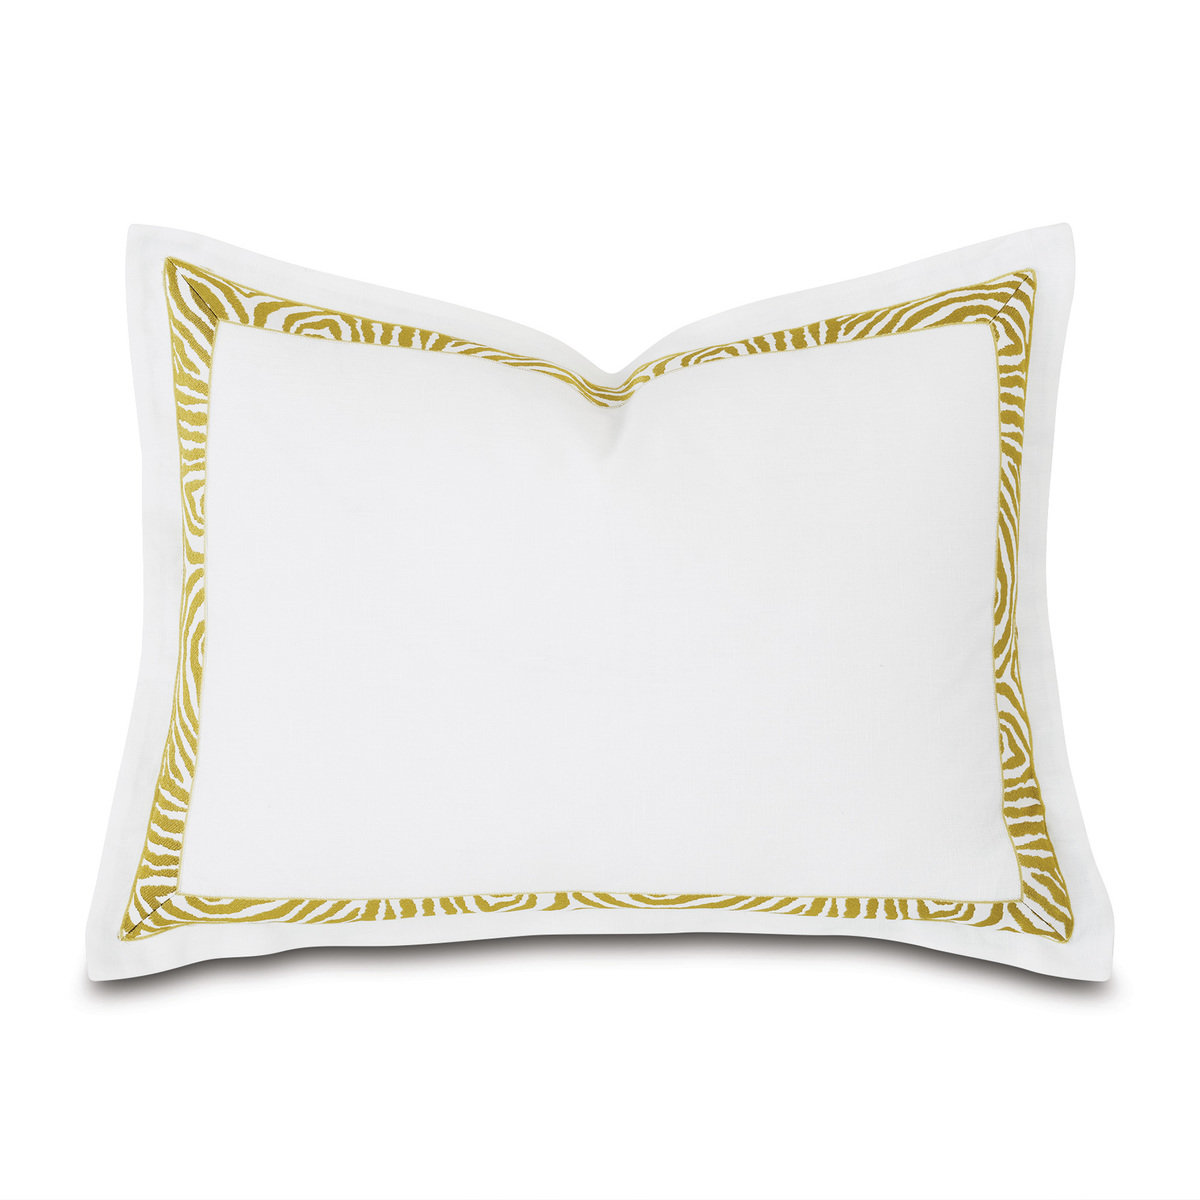 Alexa hampton eastern accent bedding ashbury stn 01 1200 xxx q85